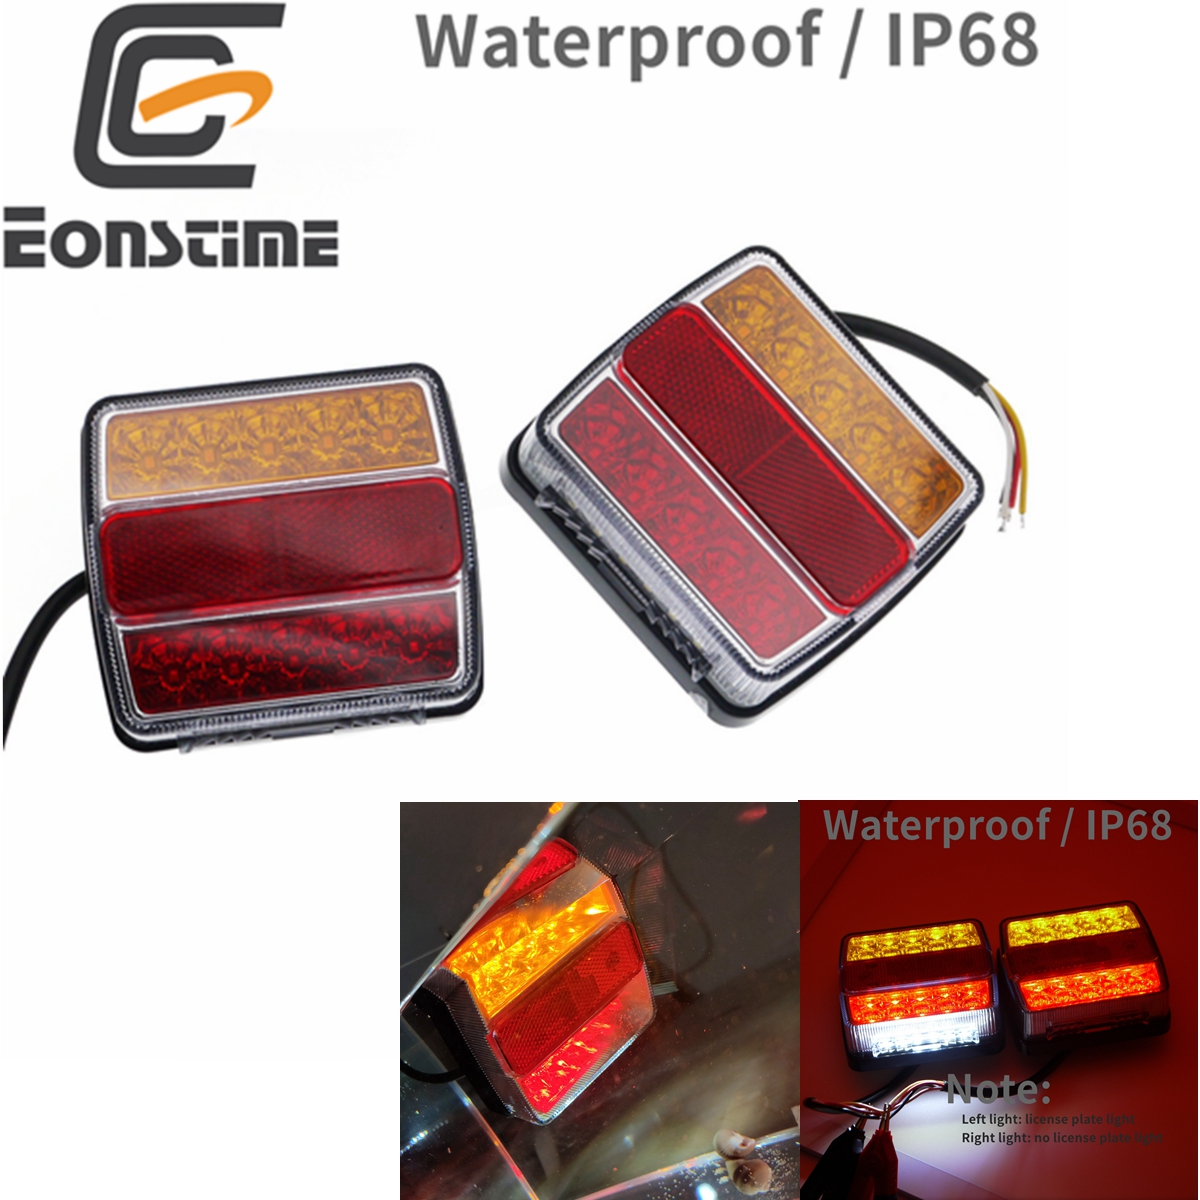 Eonstime 2pcs DC 12V 16LED Truck Car Trailer Boat Caravan Rear Tail Light Stop Lamp Taillight Waterproof IP68